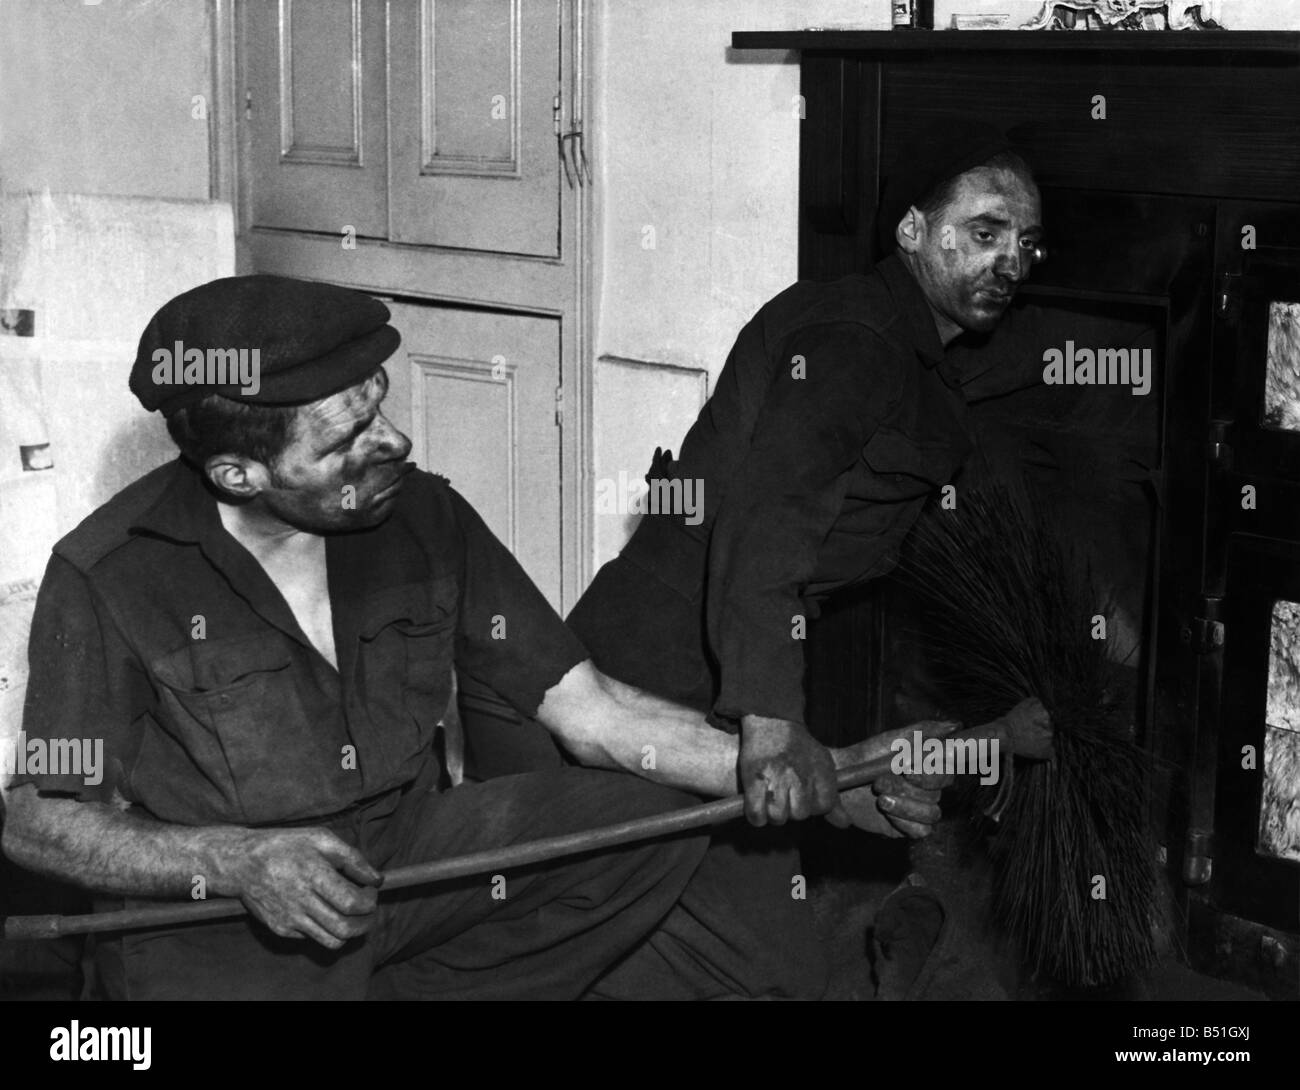 Chimney SweepsMr. Cuttriss (left) and Lionel who are working on a blocked up chimney. January - Stock Image